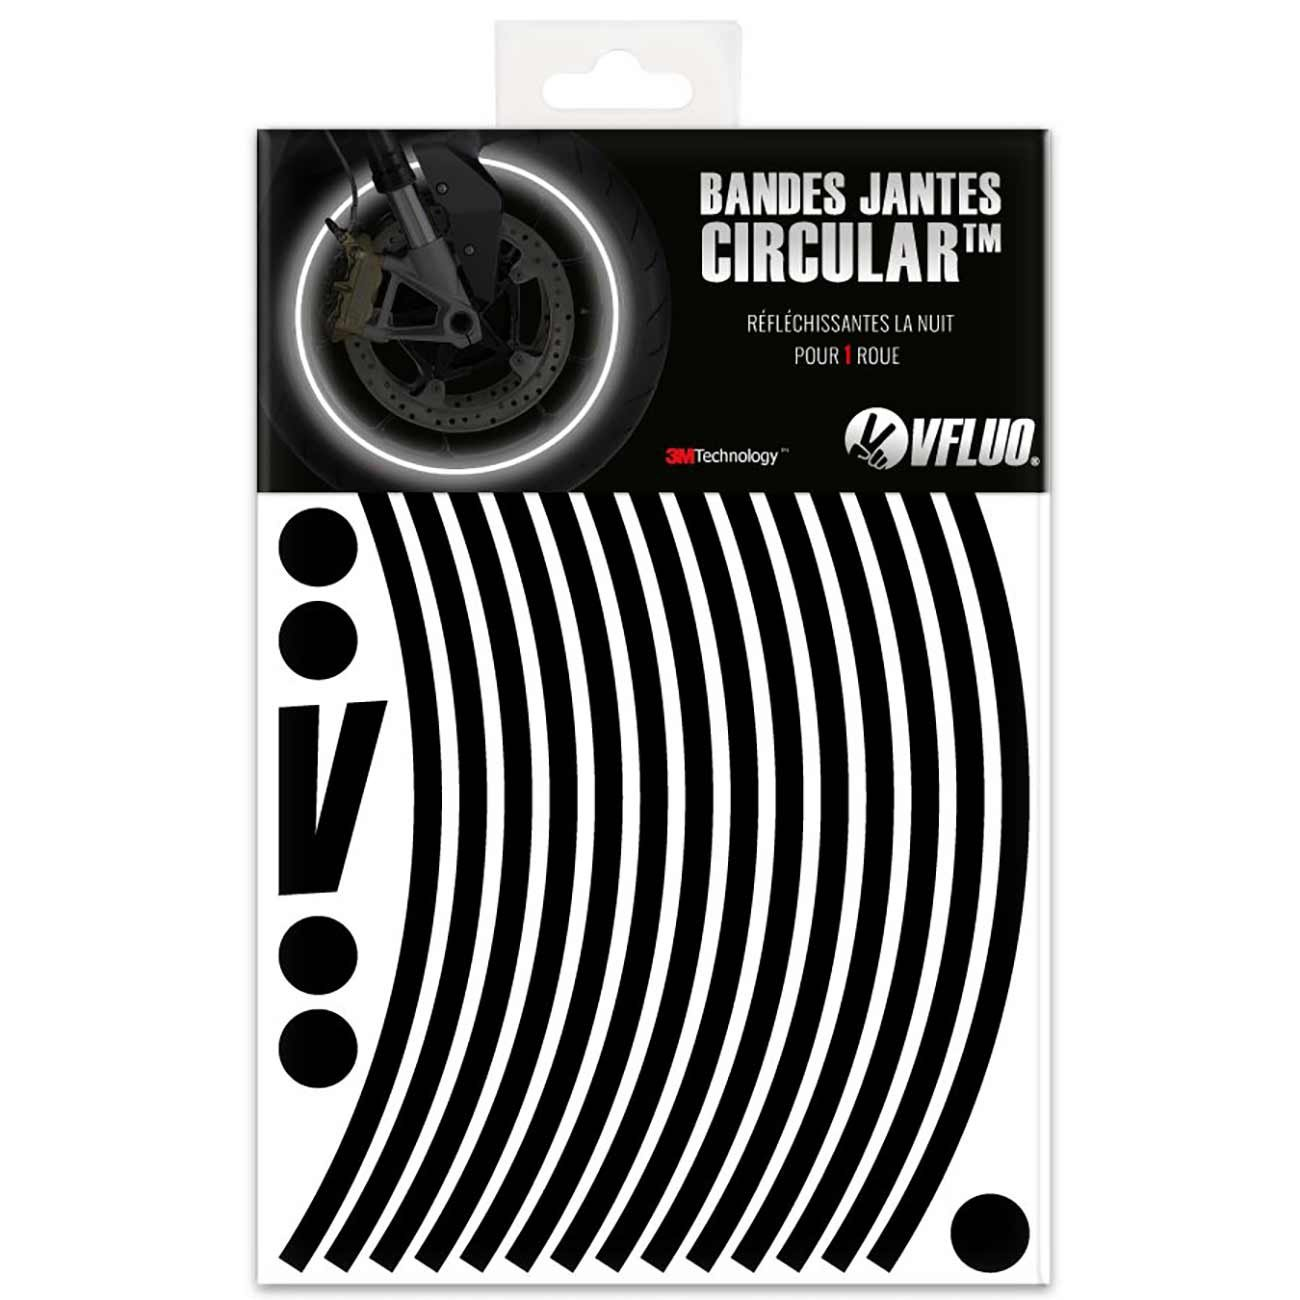 VFLUO CIRCULAR, Motorcycle retro reflective wheel stripes kit (1 wheel), 3M Technology, 7 mm width, Black